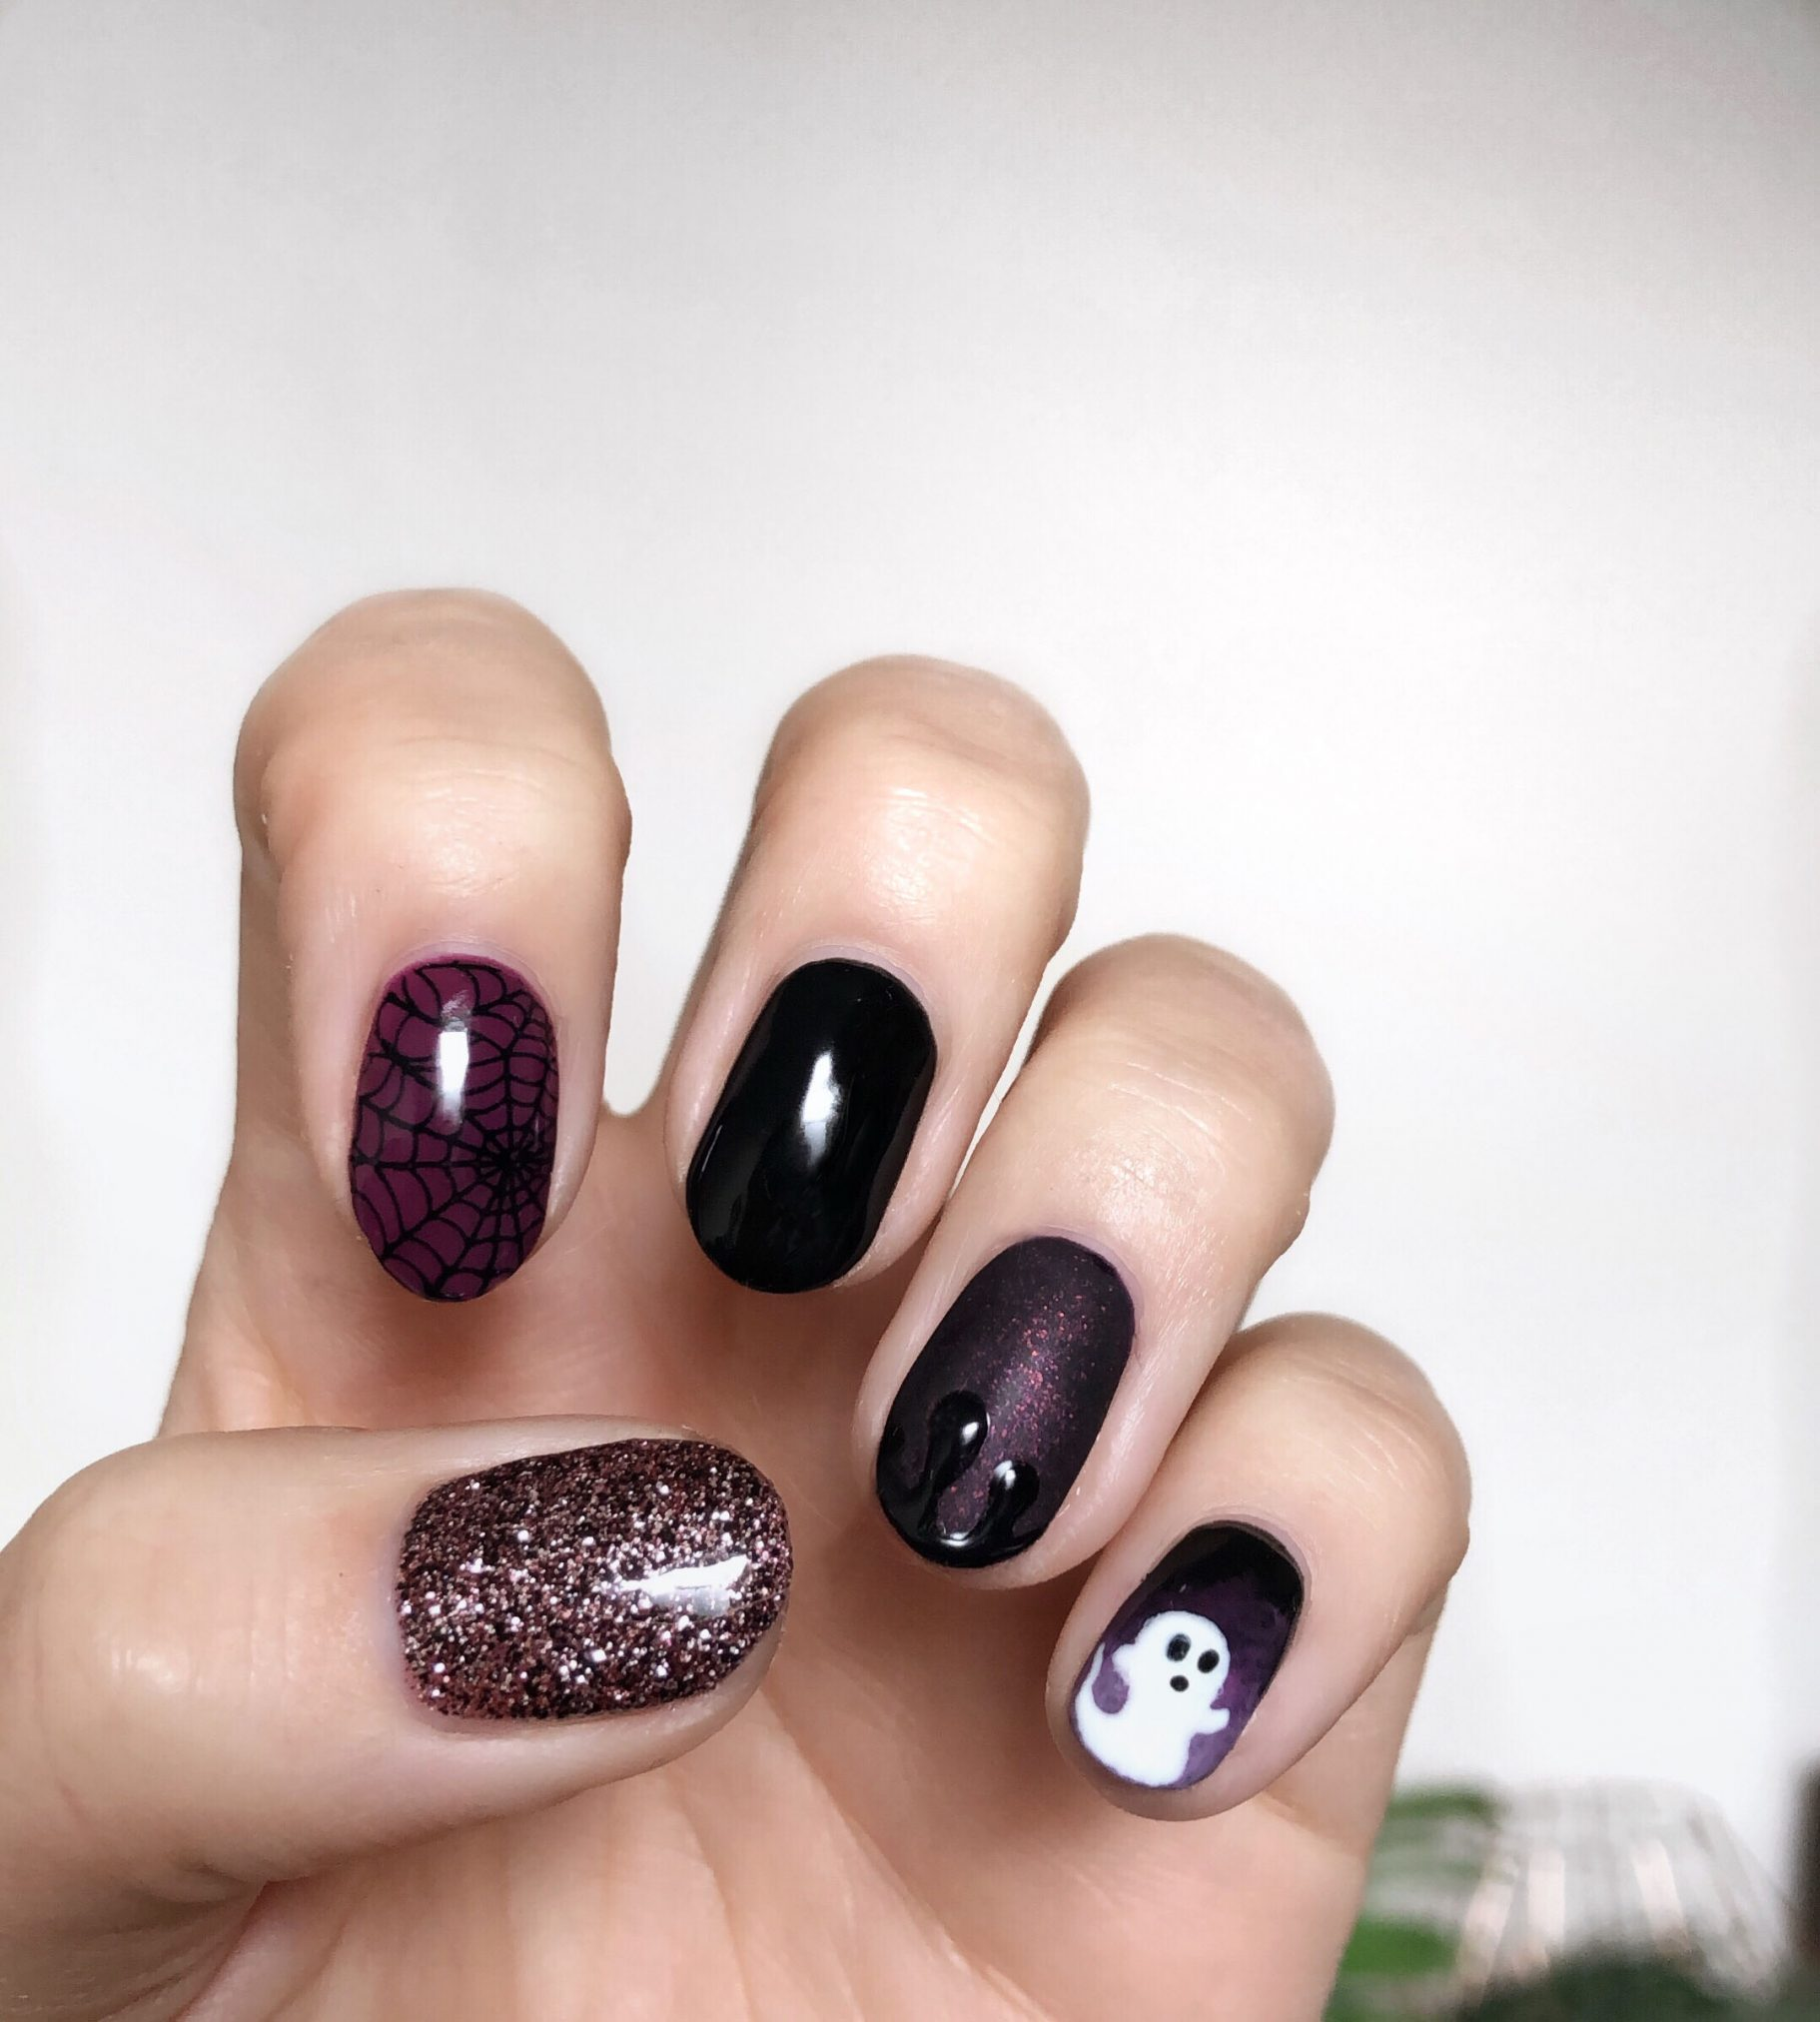 Halloween Gel Nails: Cute & Spooky Purple Nail Art Design